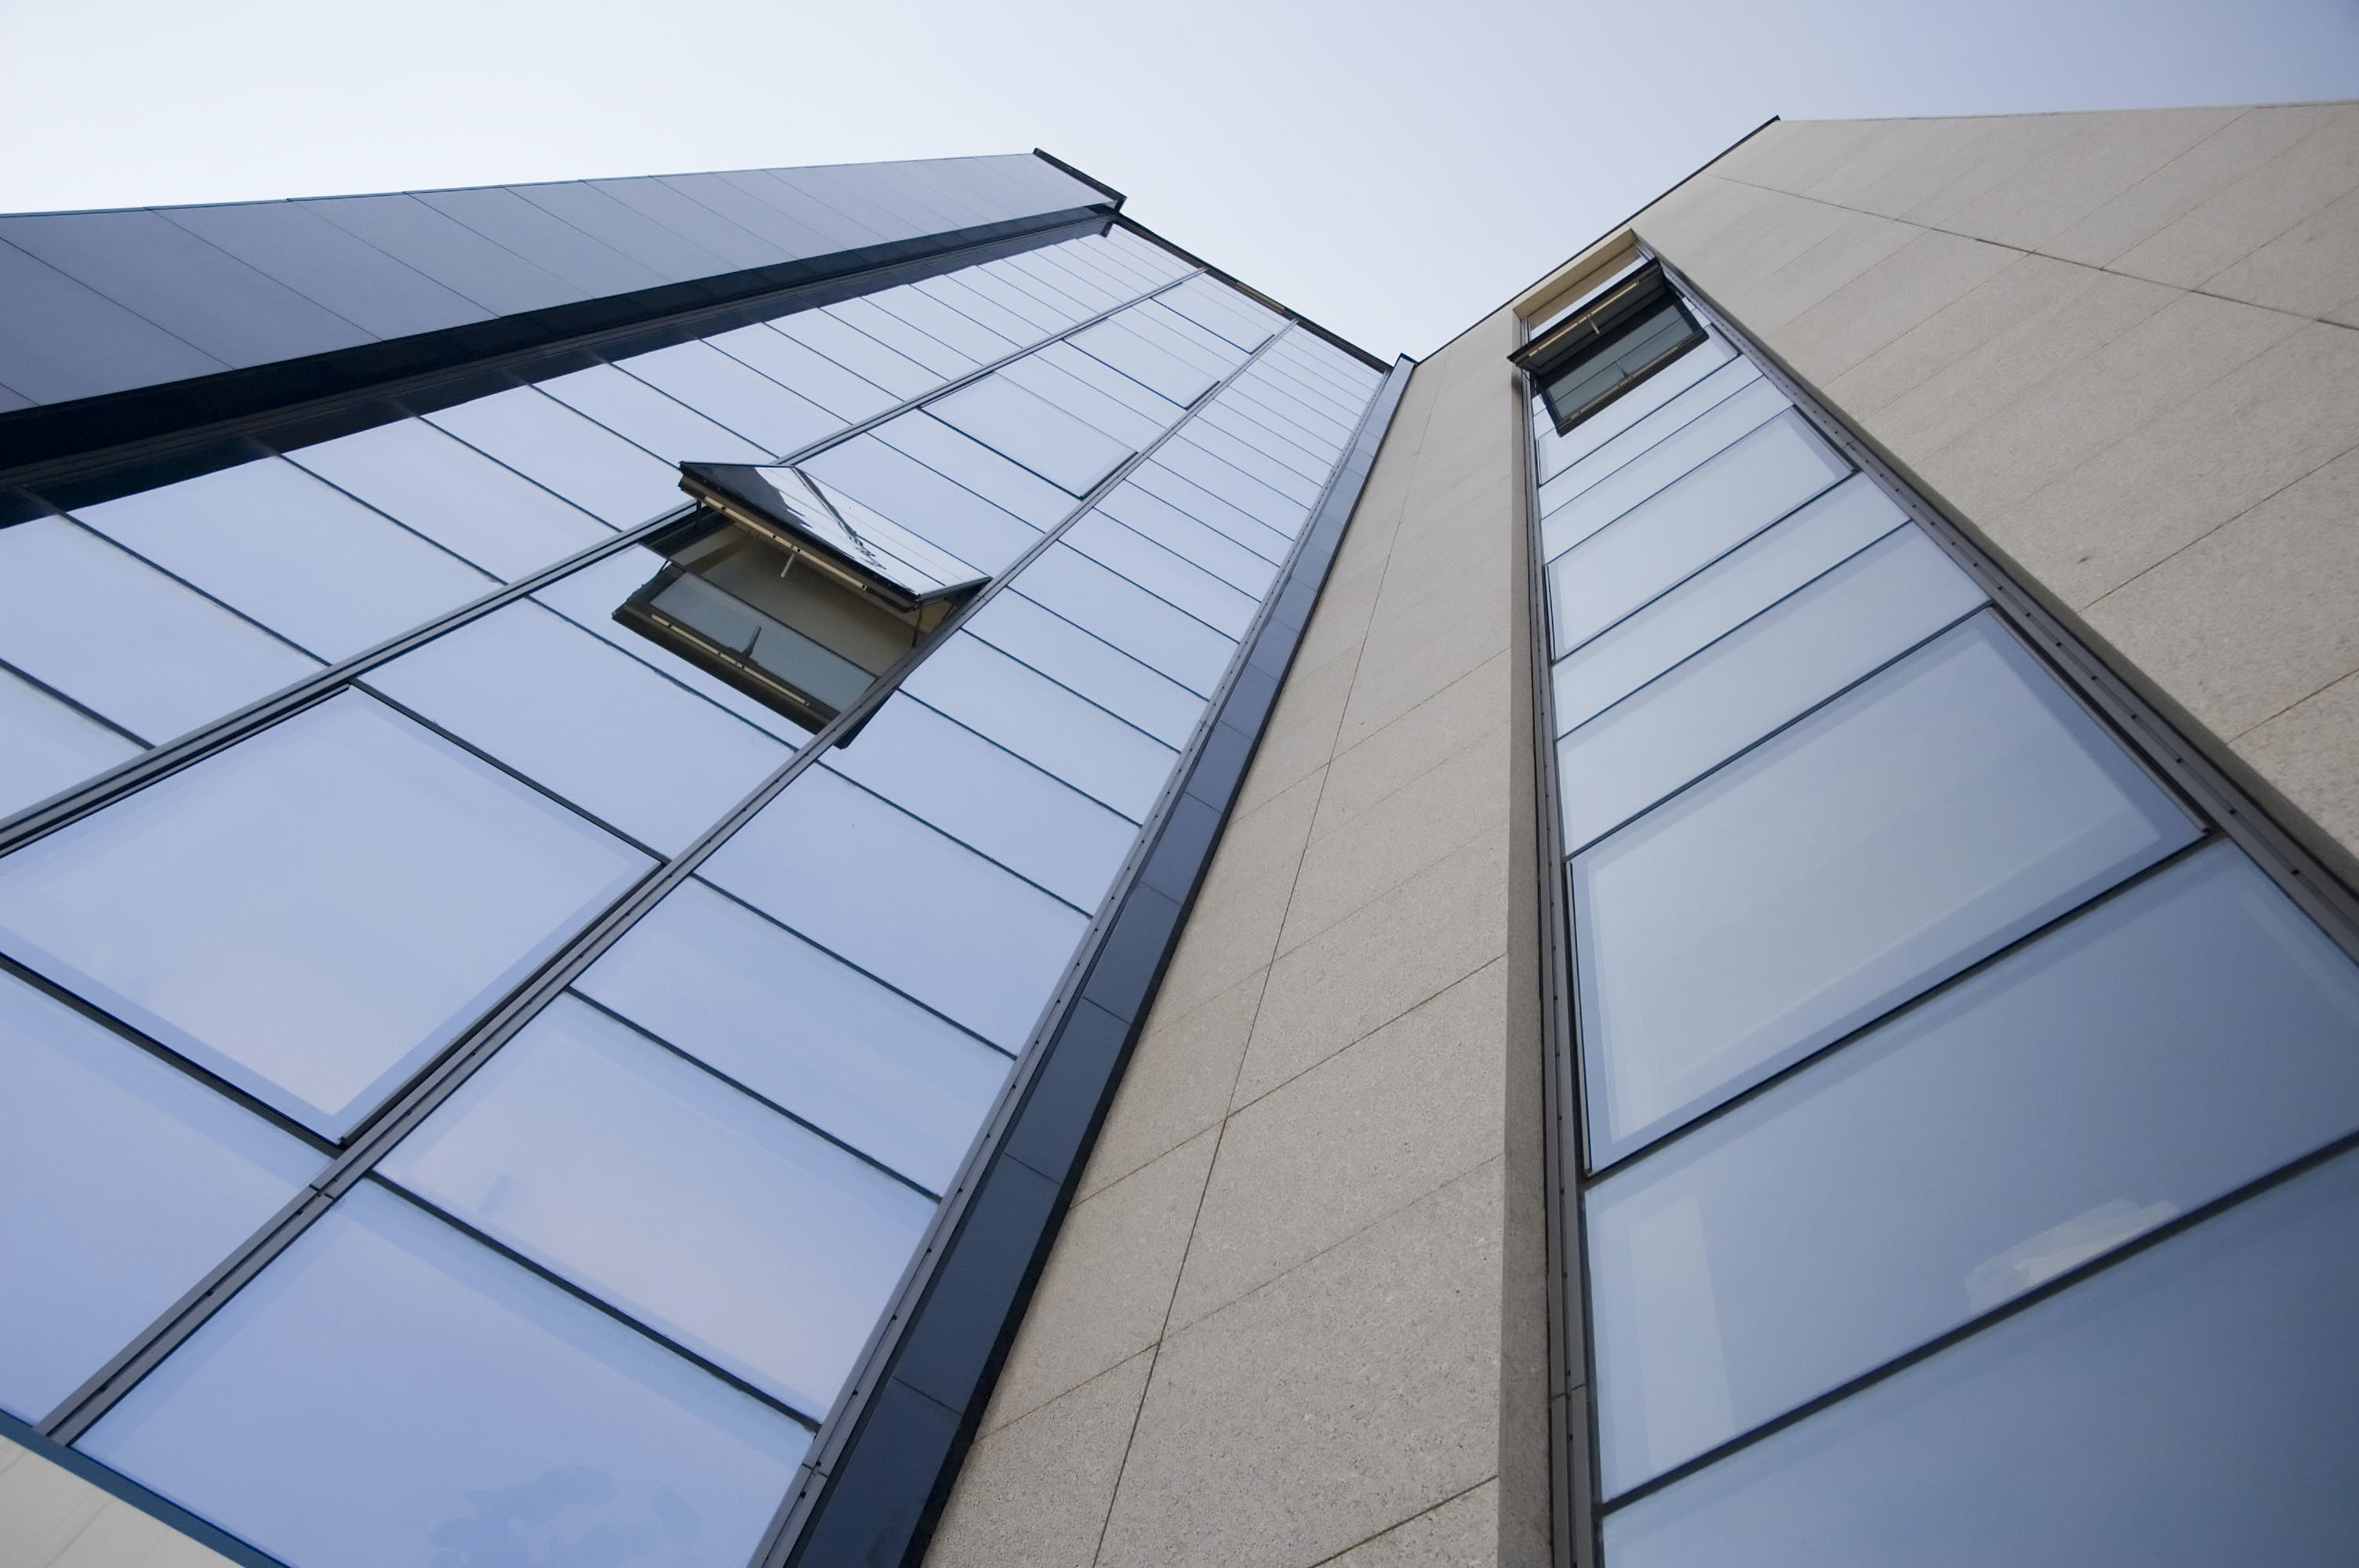 Gray Concrete Building With Glass Windows in Low-angle Photography